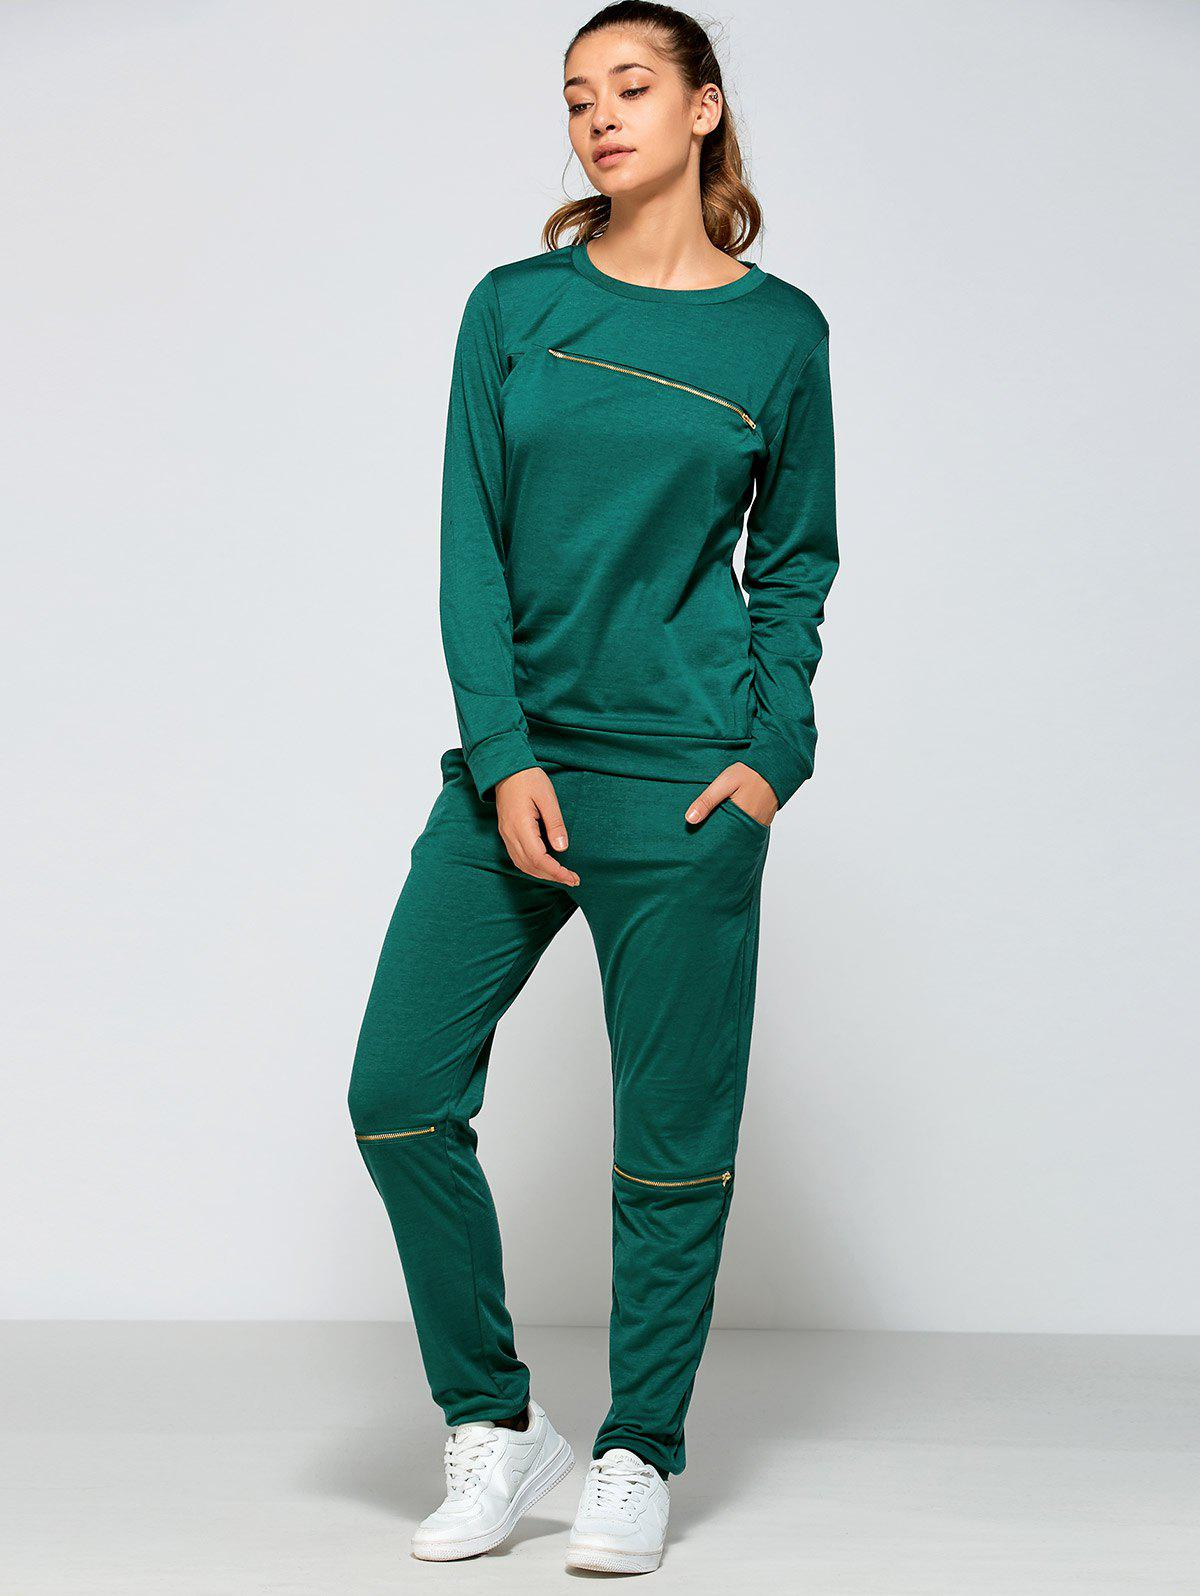 Zippered Sweatshirt and Pants with Pocket pocket sweatshirt and sequins jogger pants